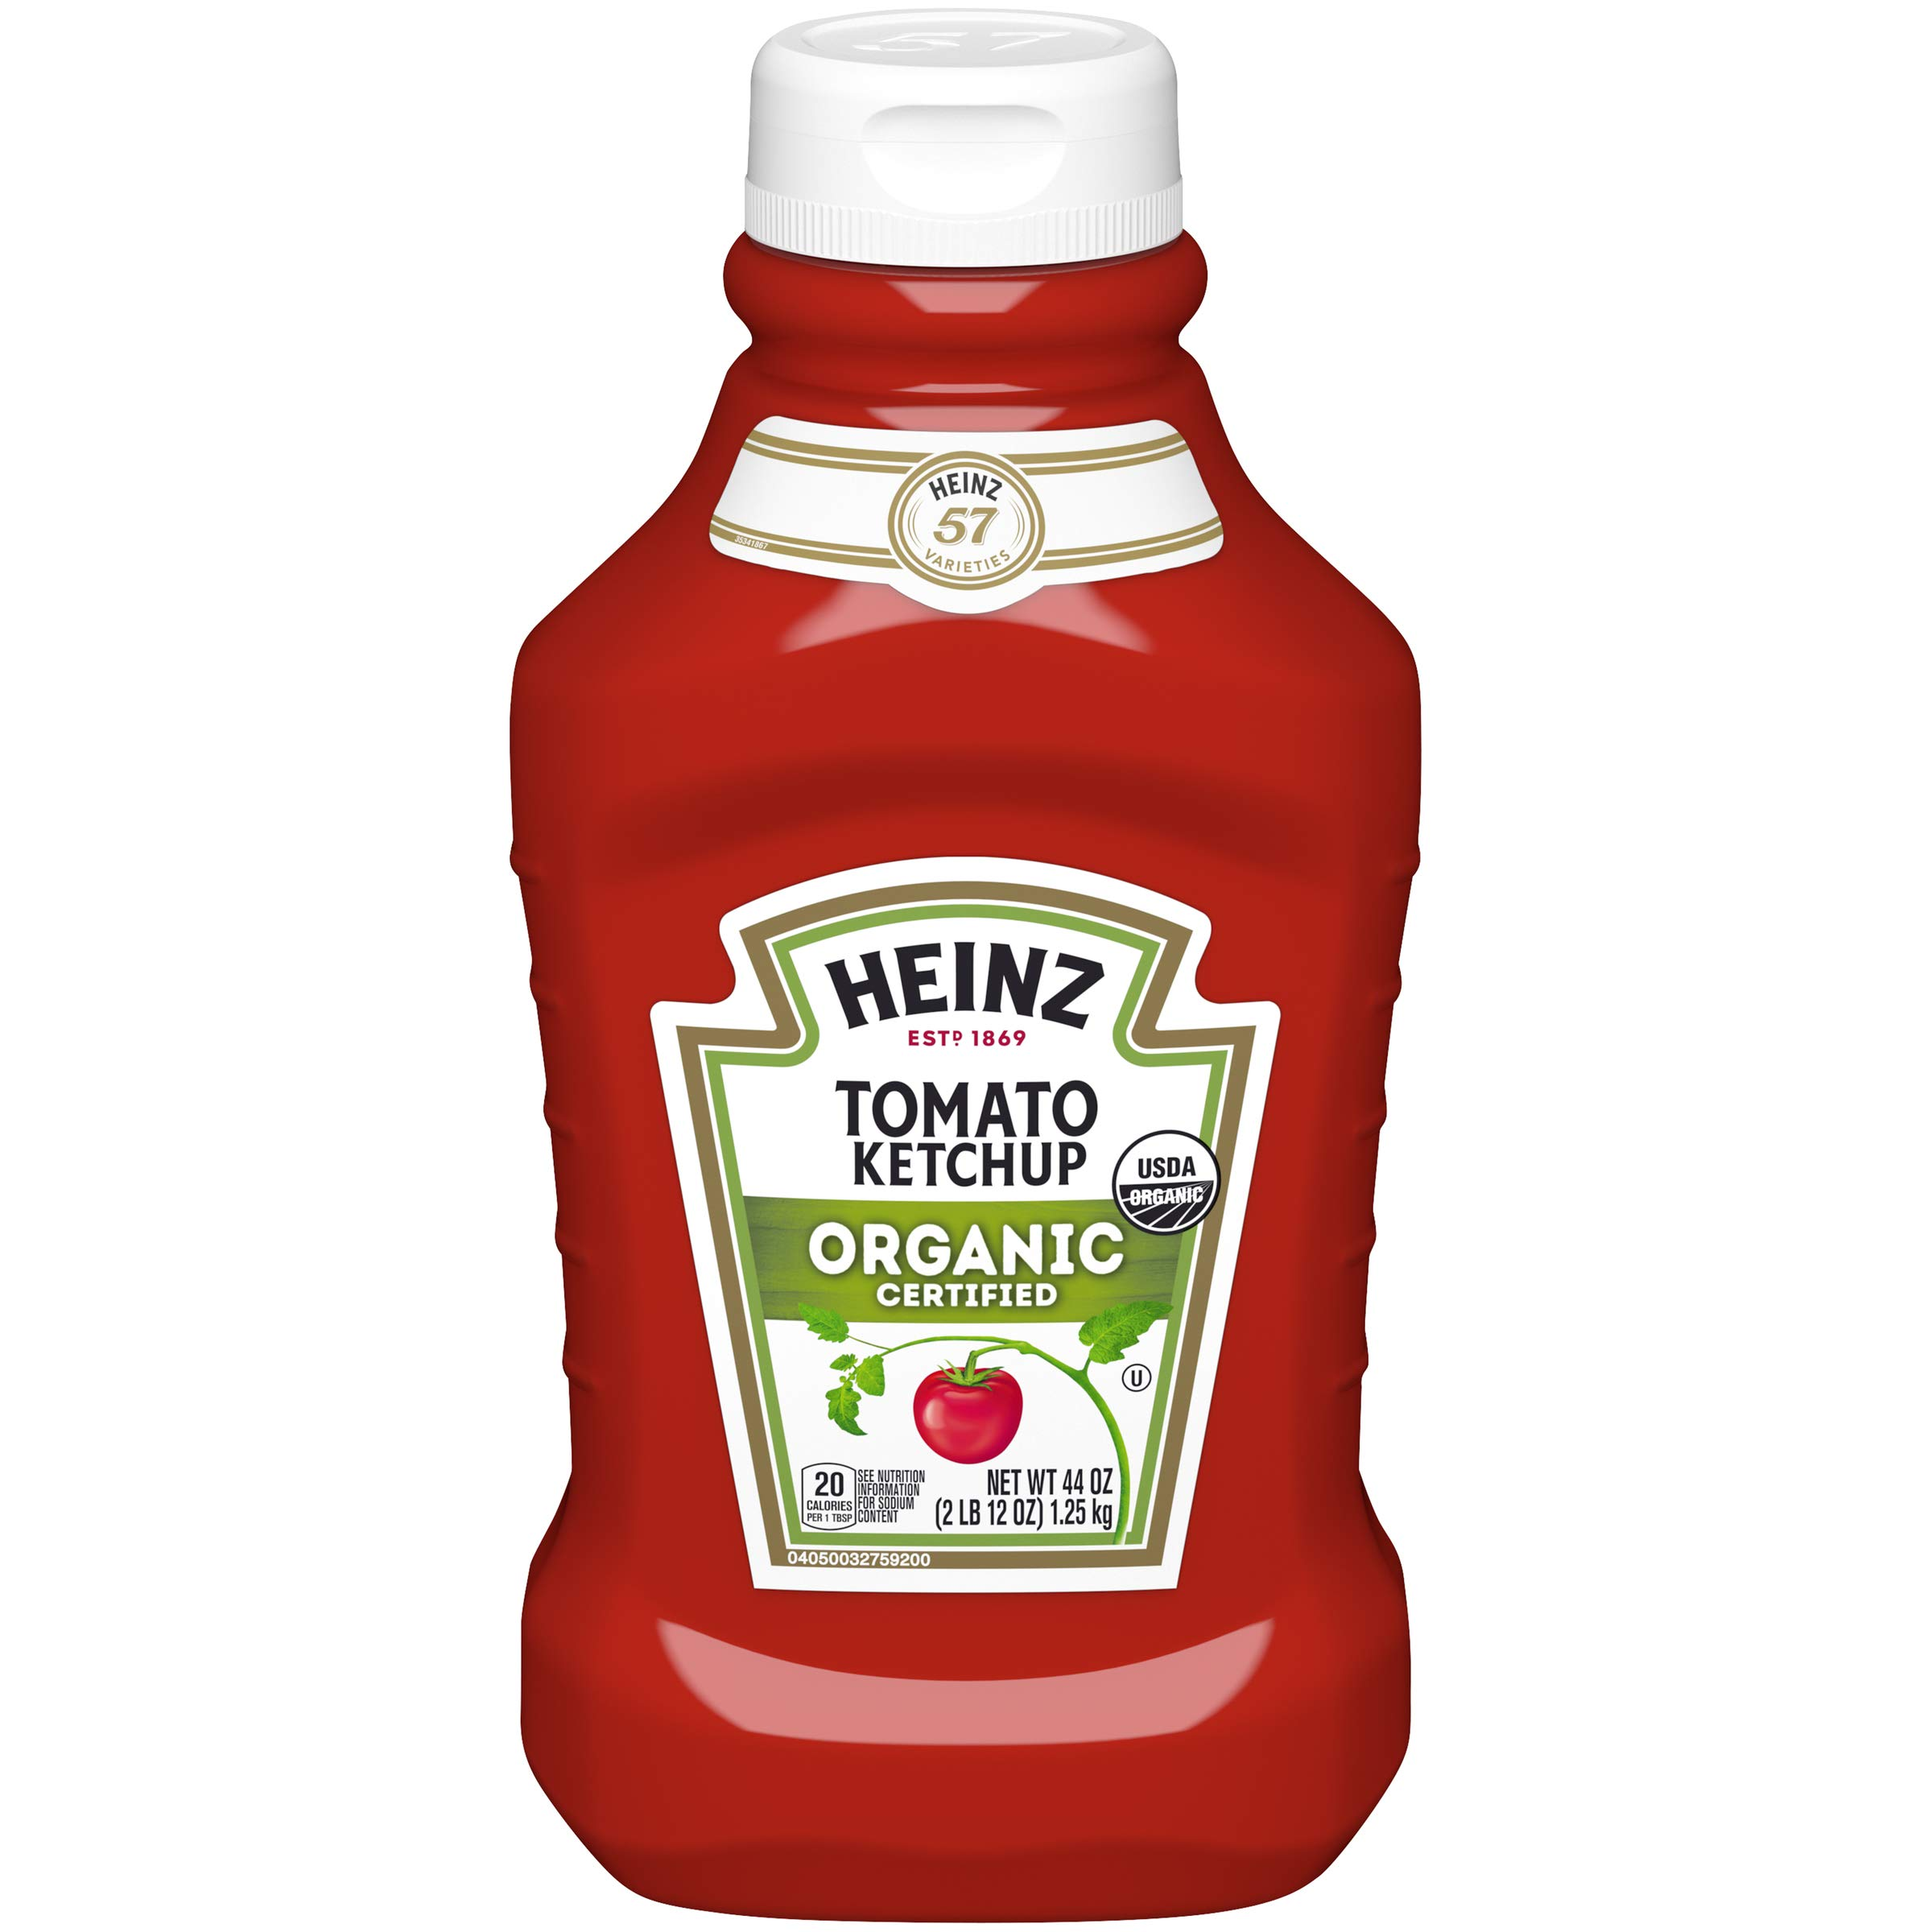 Heinz Organic Tomato Ketchup (44 oz Bottles, Pack of 6) by Heinz